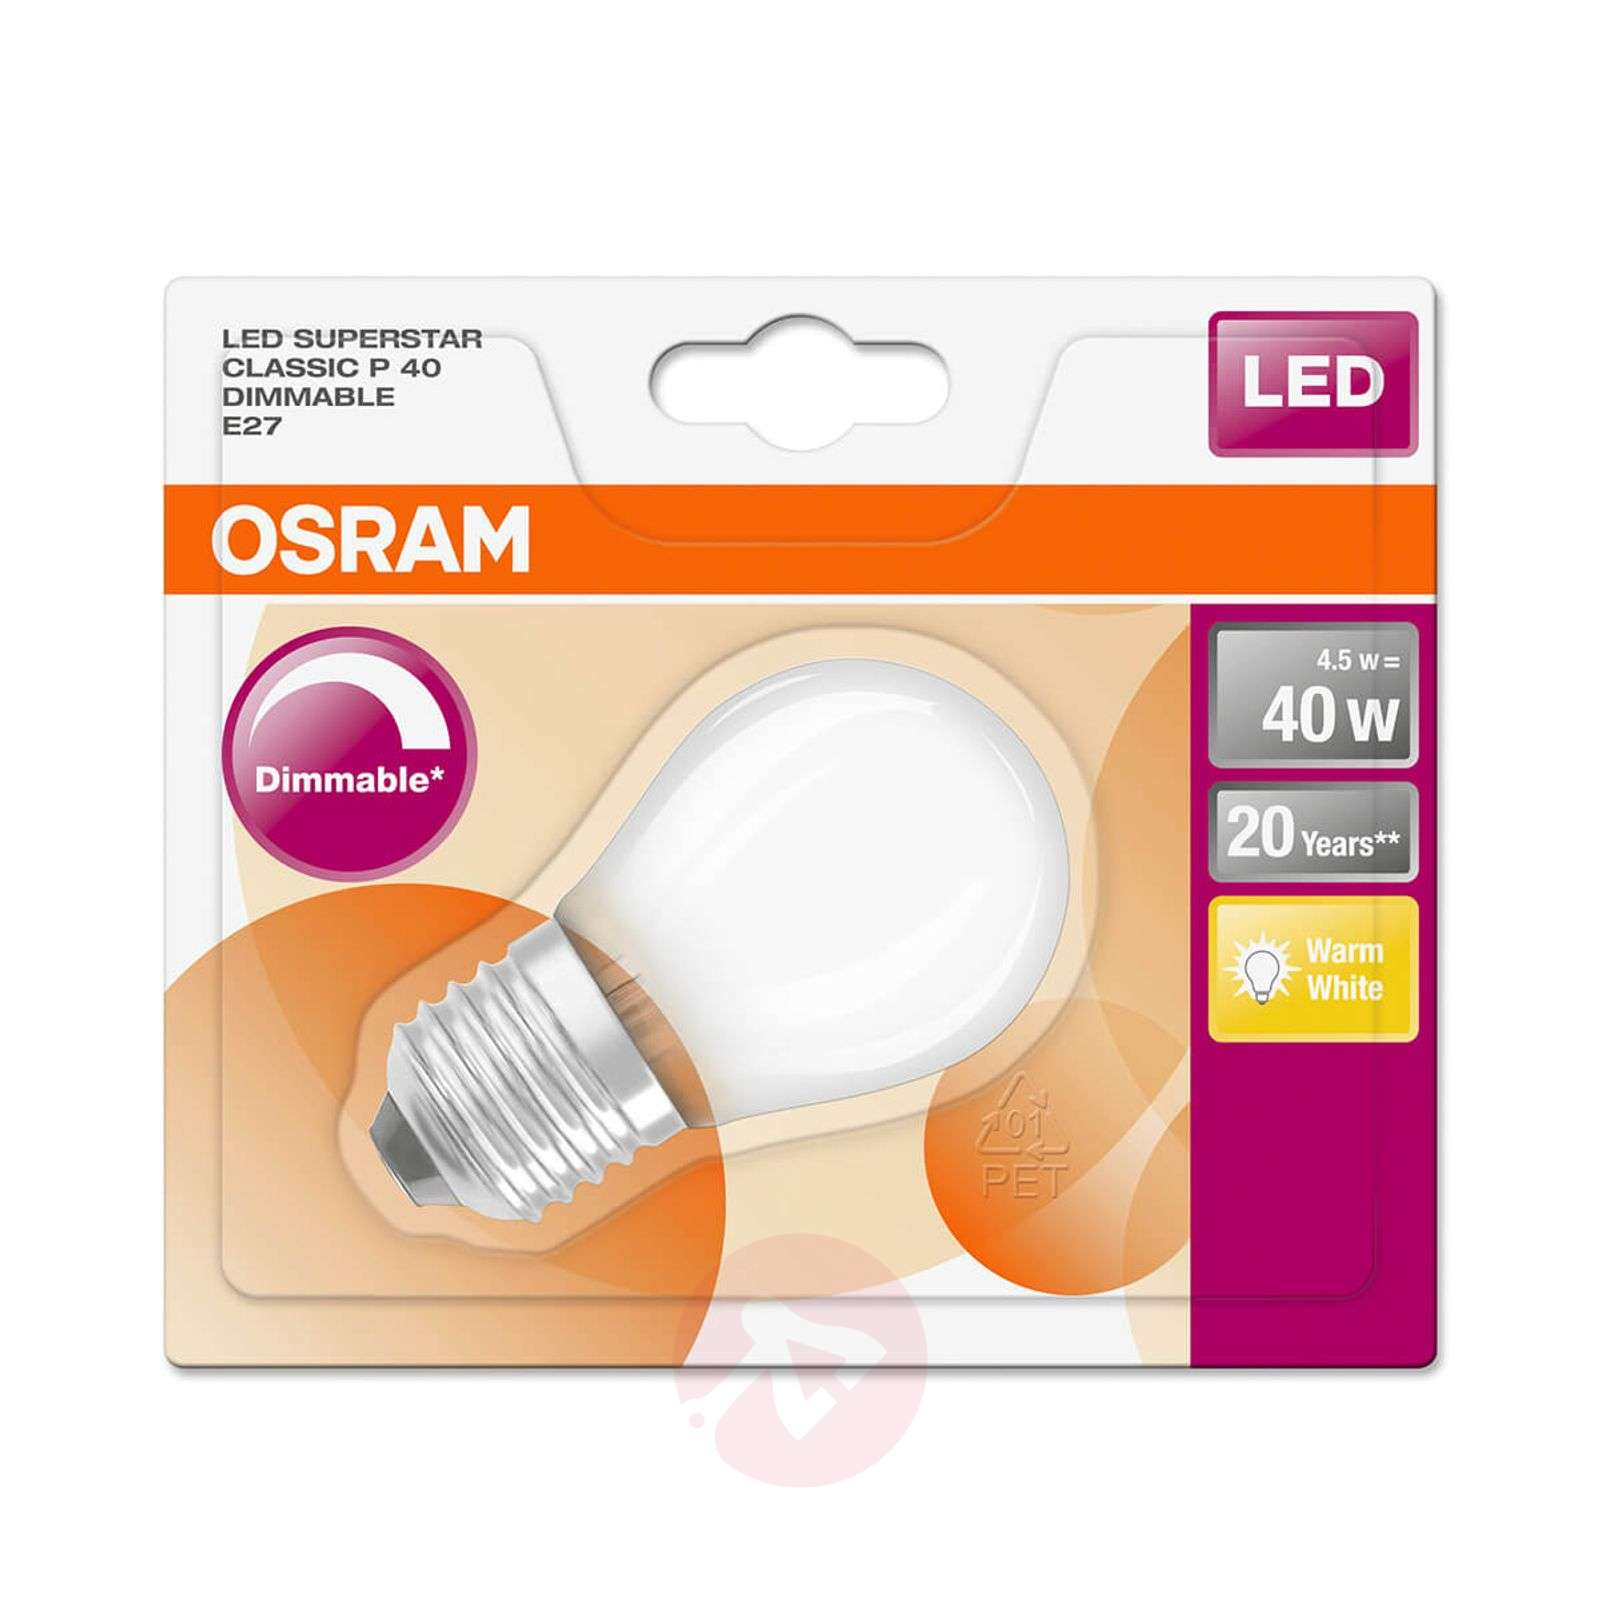 LED druppellamp E27 4,5W, warmwit, dimbaar-7262029-01